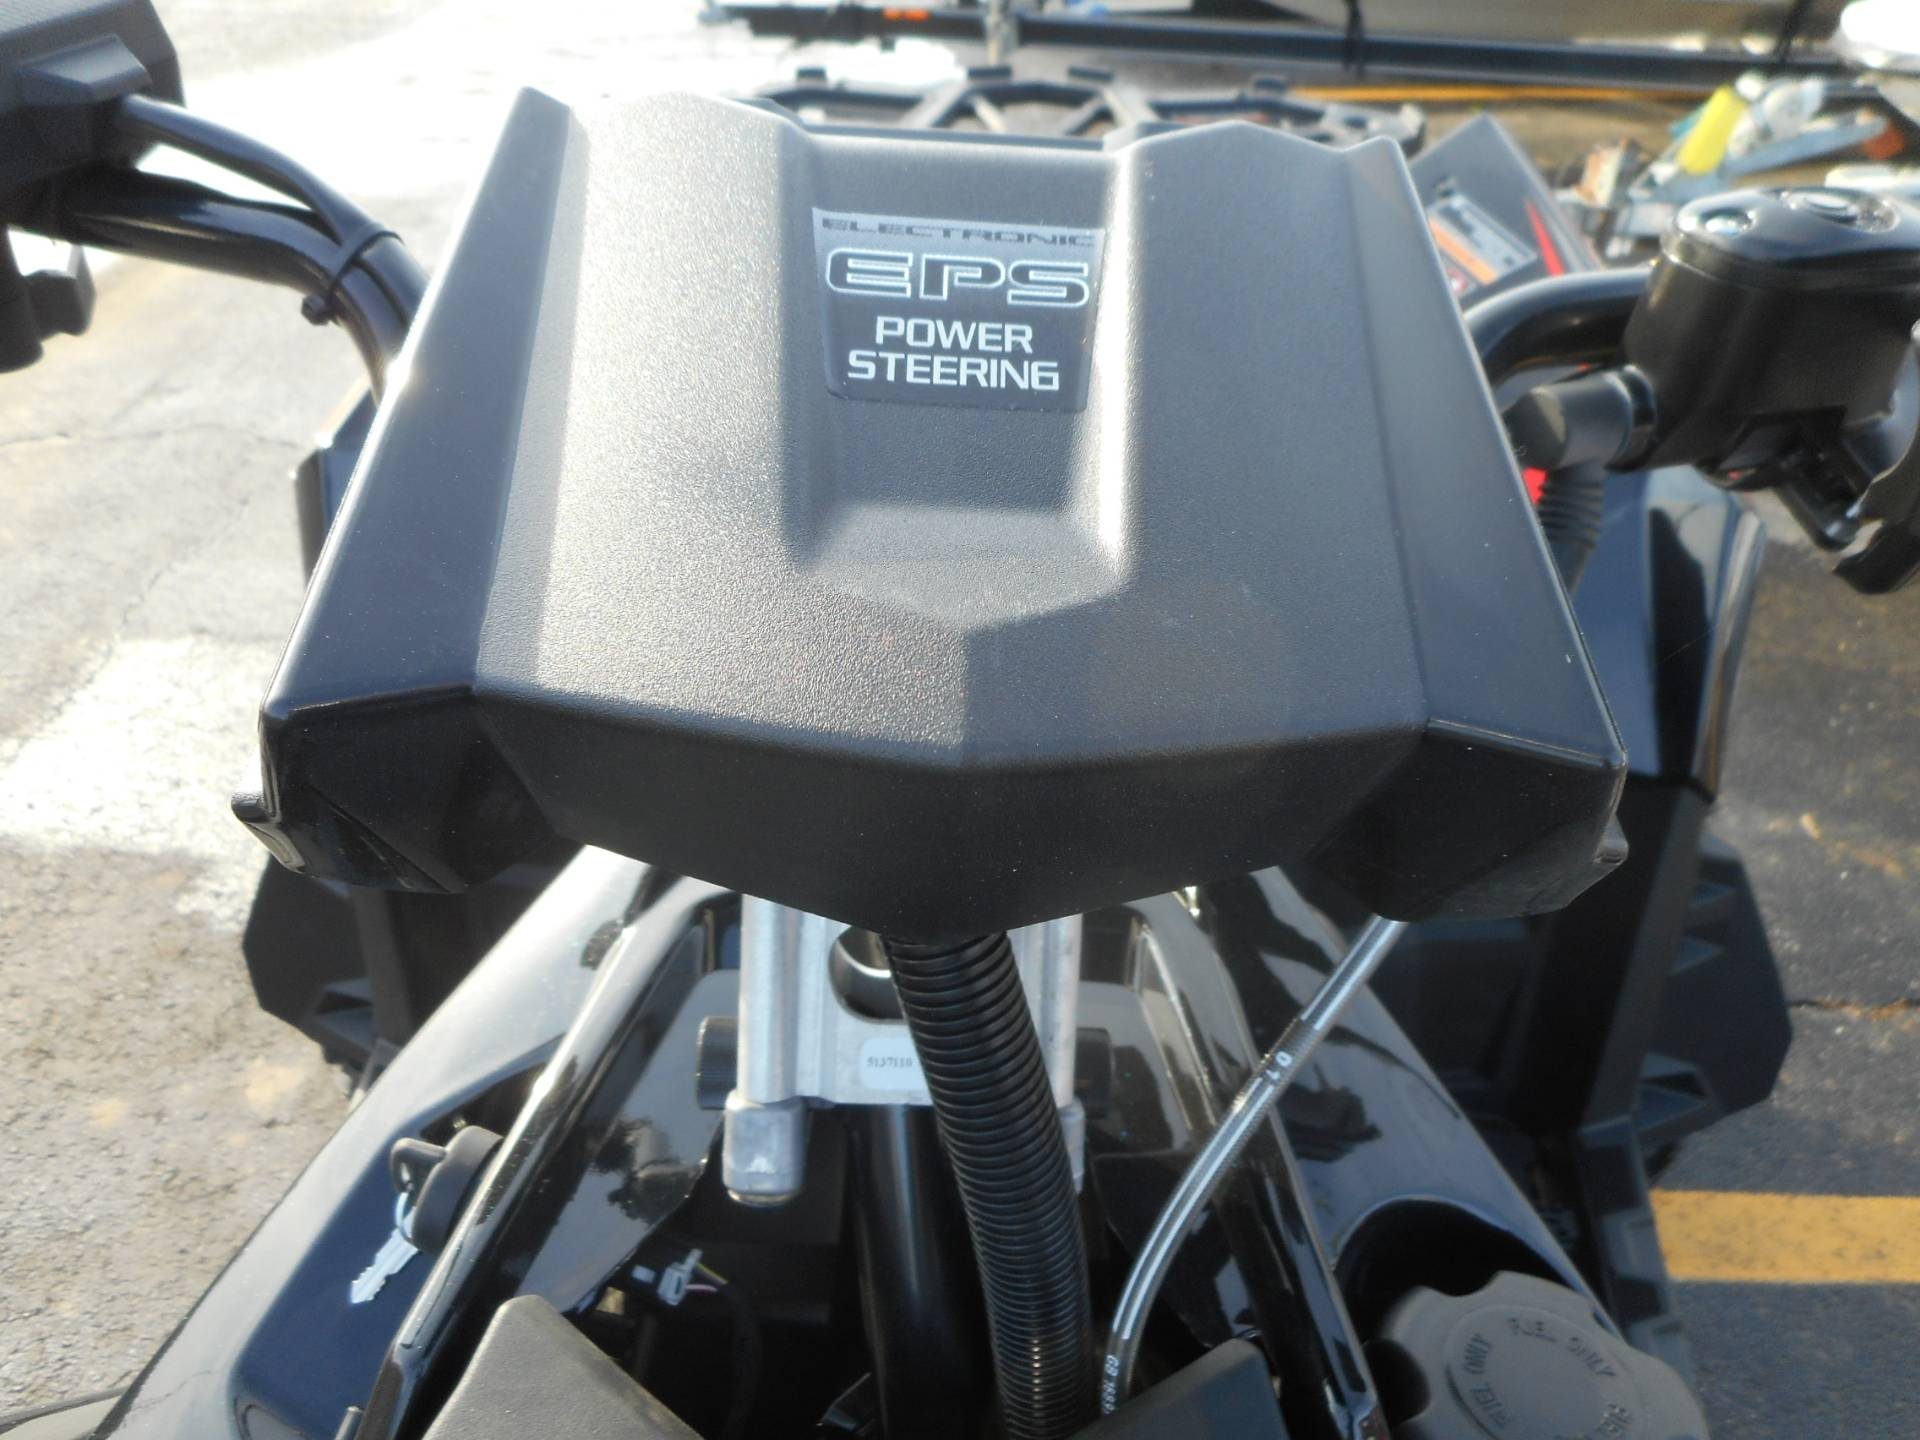 2020 Polaris Scrambler XP 1000 S in Belvidere, Illinois - Photo 11